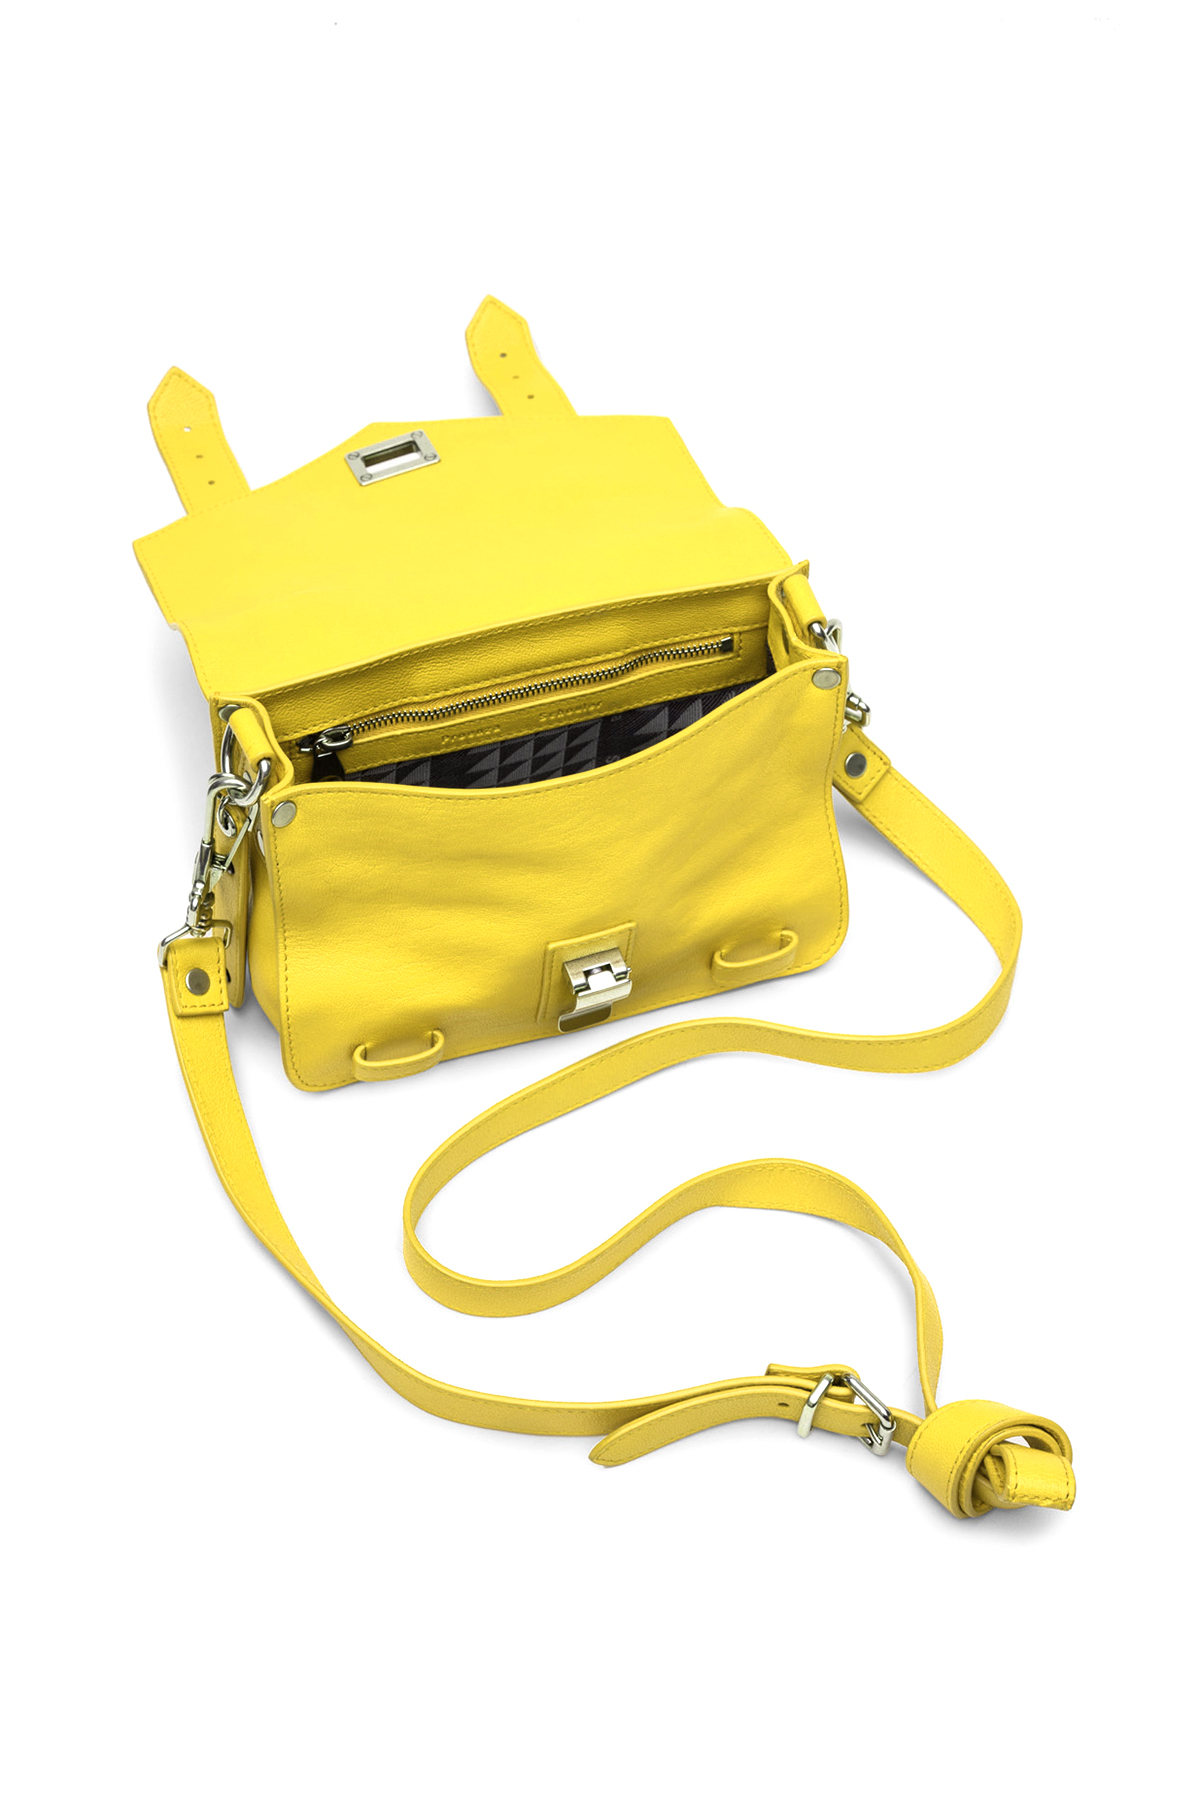 Proenza Schouler Leather Ps1 Mini Crossbody In Absinthe in Yellow